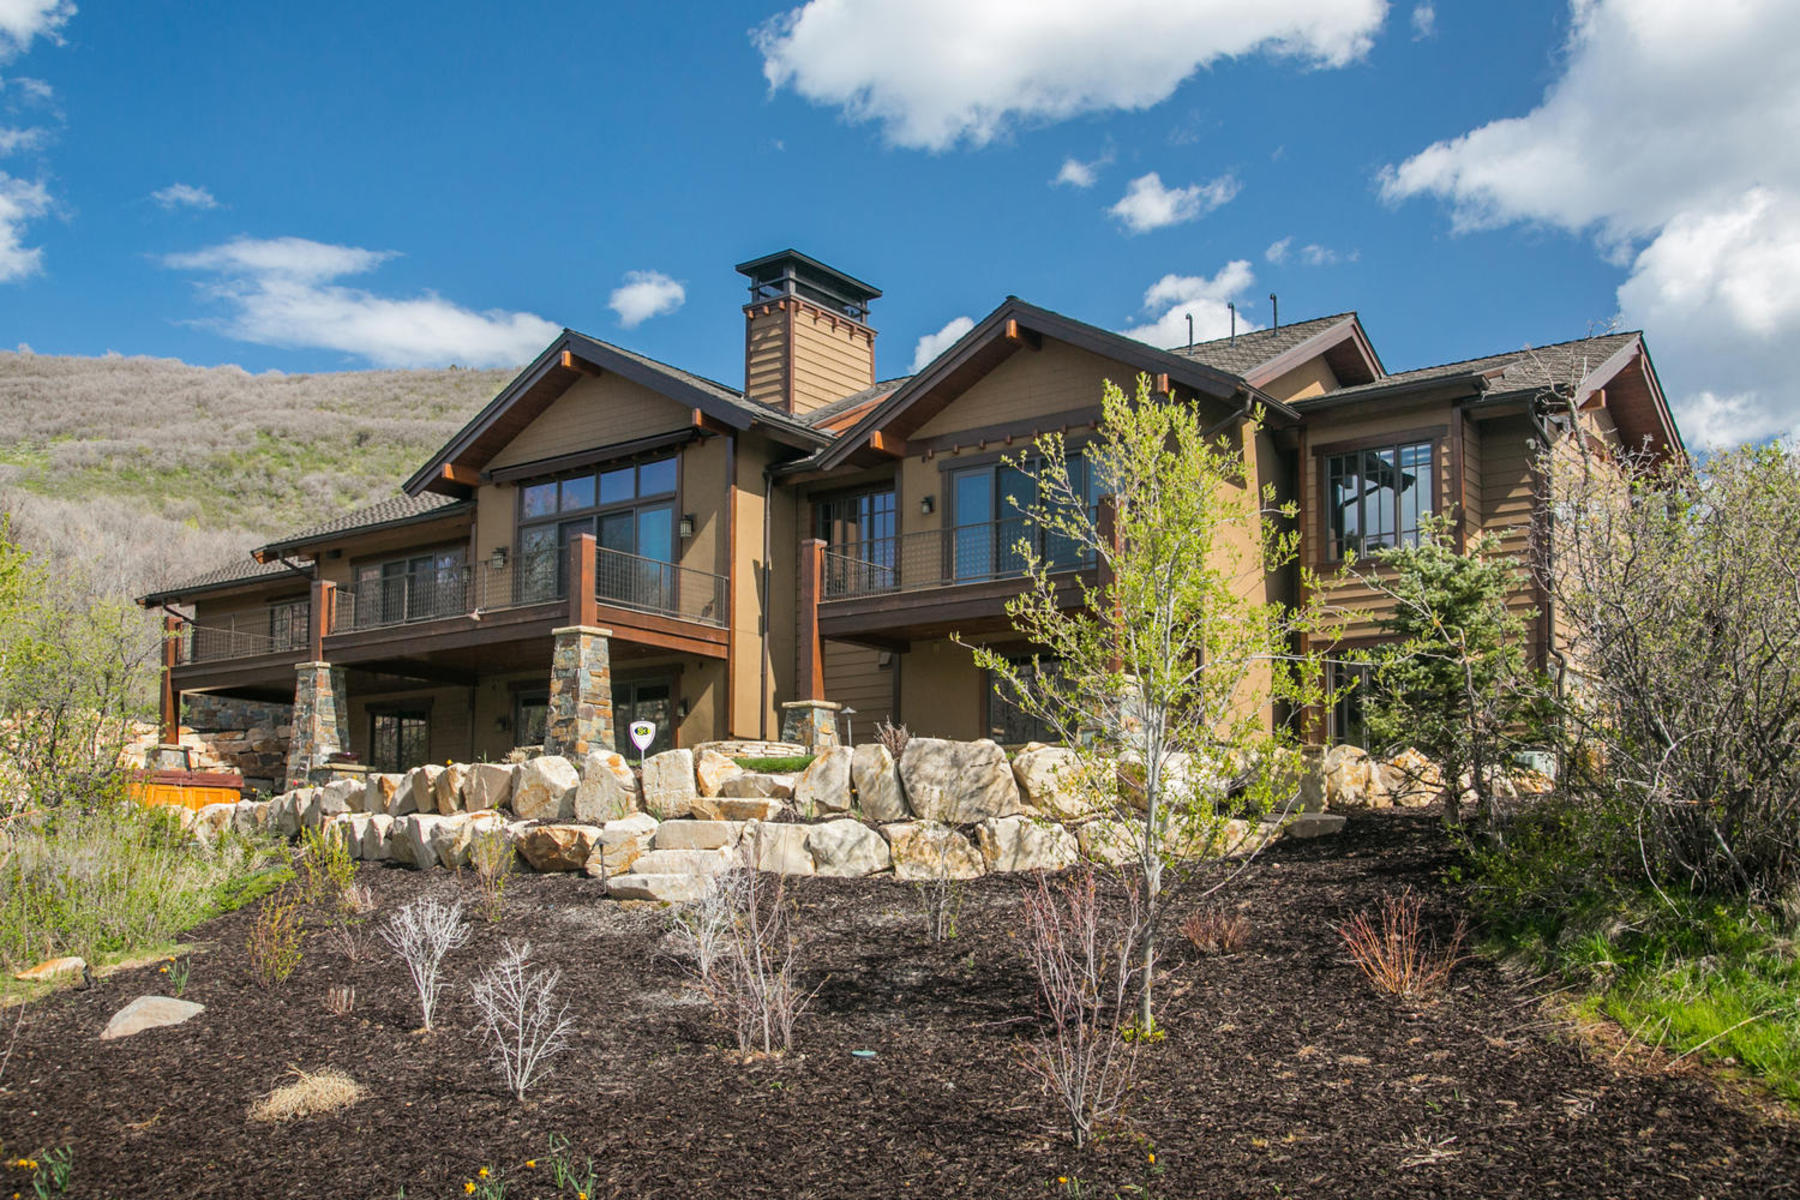 Single Family Home for Sale at 2011 Parade of Home Showcase Home 8929 Parleys Ln Park City, Utah 84098 United States